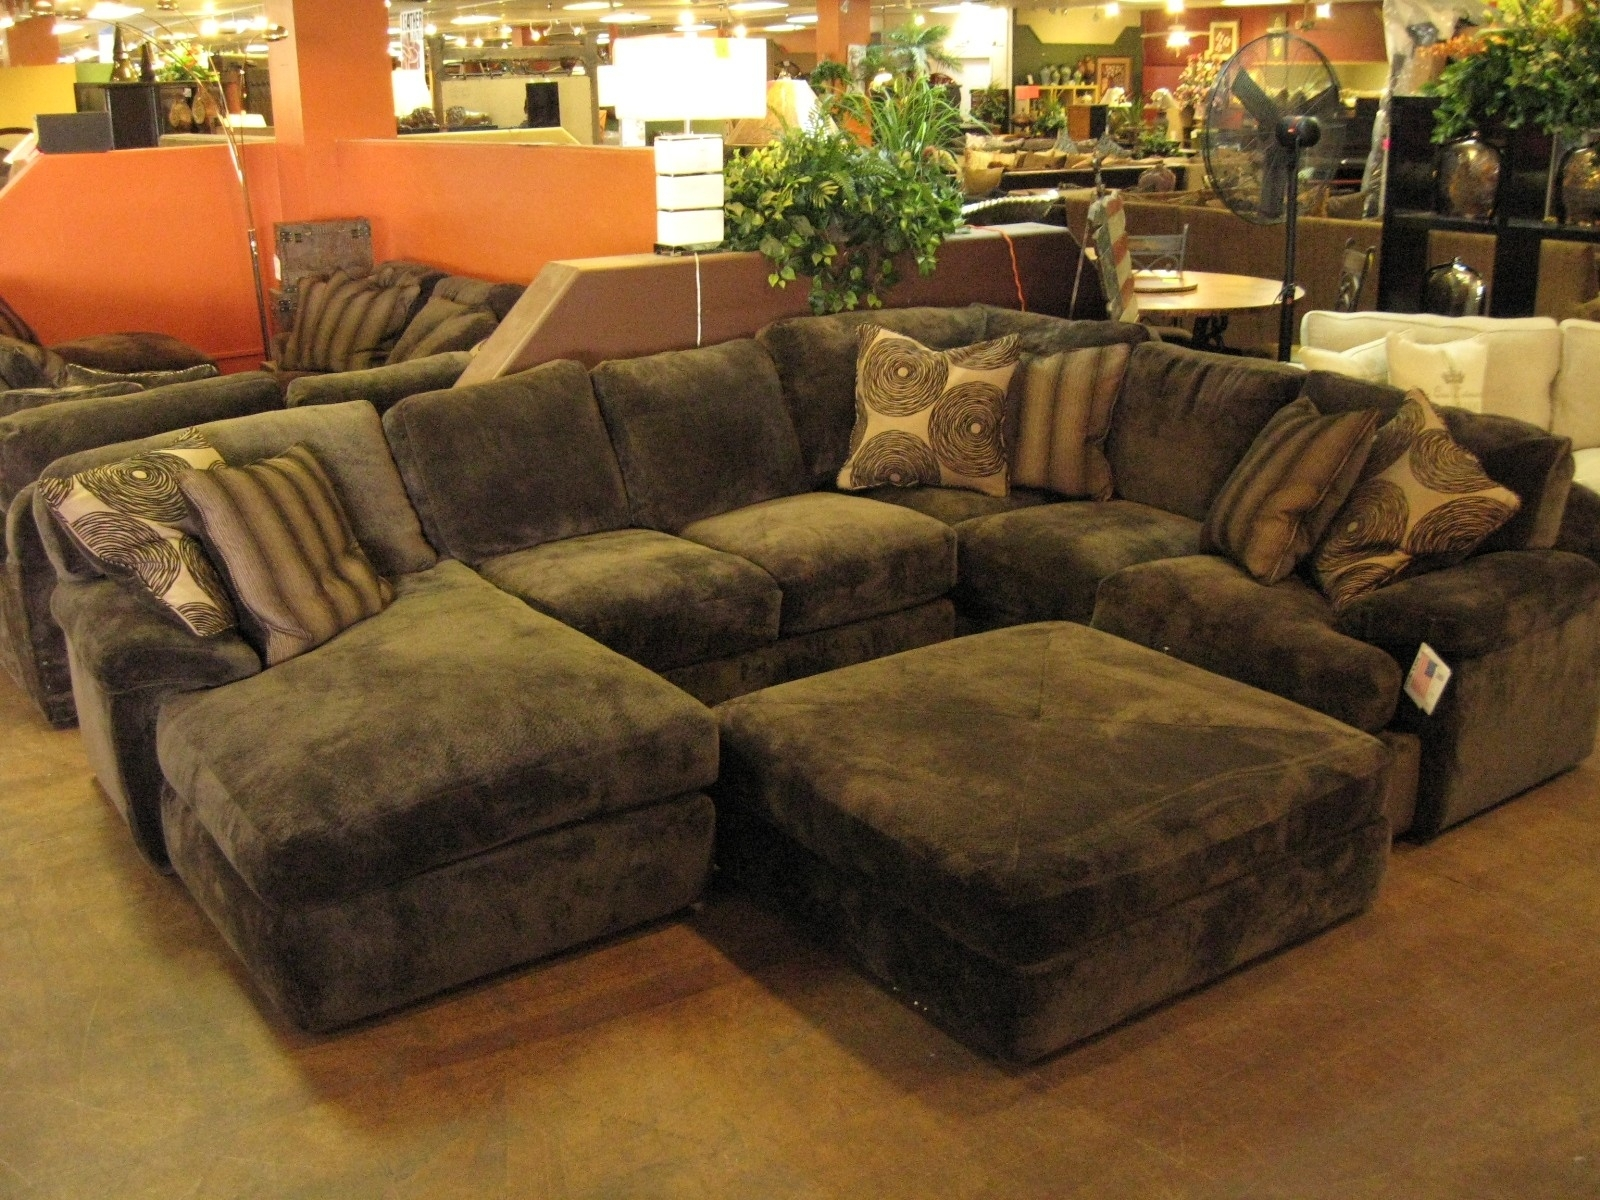 Lovely Large Sectional Sofa With Ottoman 24 On Table Ideas With Regard To Sectional Sofas With Ottoman (View 2 of 10)